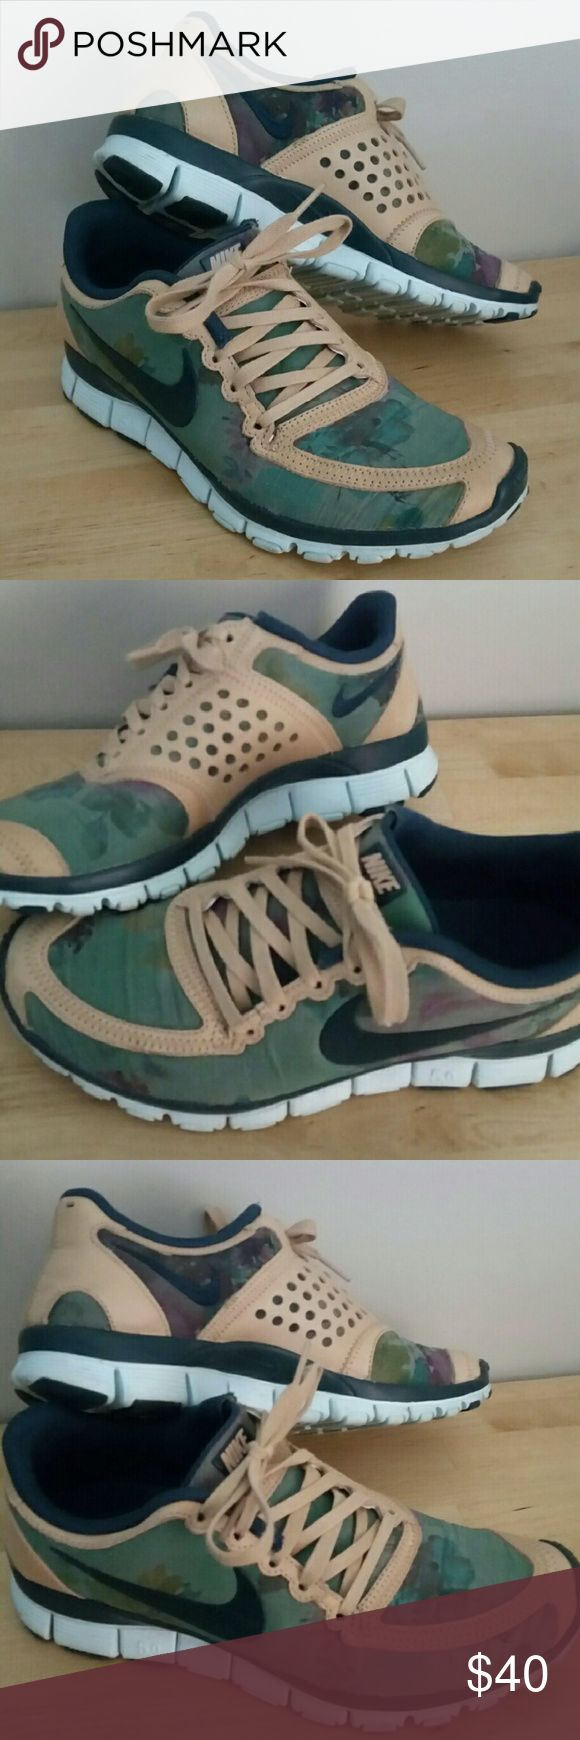 NIKE FREE 5.0 >> WMNS 7.5 Limited addition and BRAND NEW. Worn a few times inside my house but are just too small for me. These shoes run smaller then the average 7.5 size Nike!! Fit truer to a size 7.  Color: Camouflage,  Light Blue, Tan Size: 7.5  NEW, WITHOUT TAGS Smoke free and pet free home Nike Shoes Sneakers